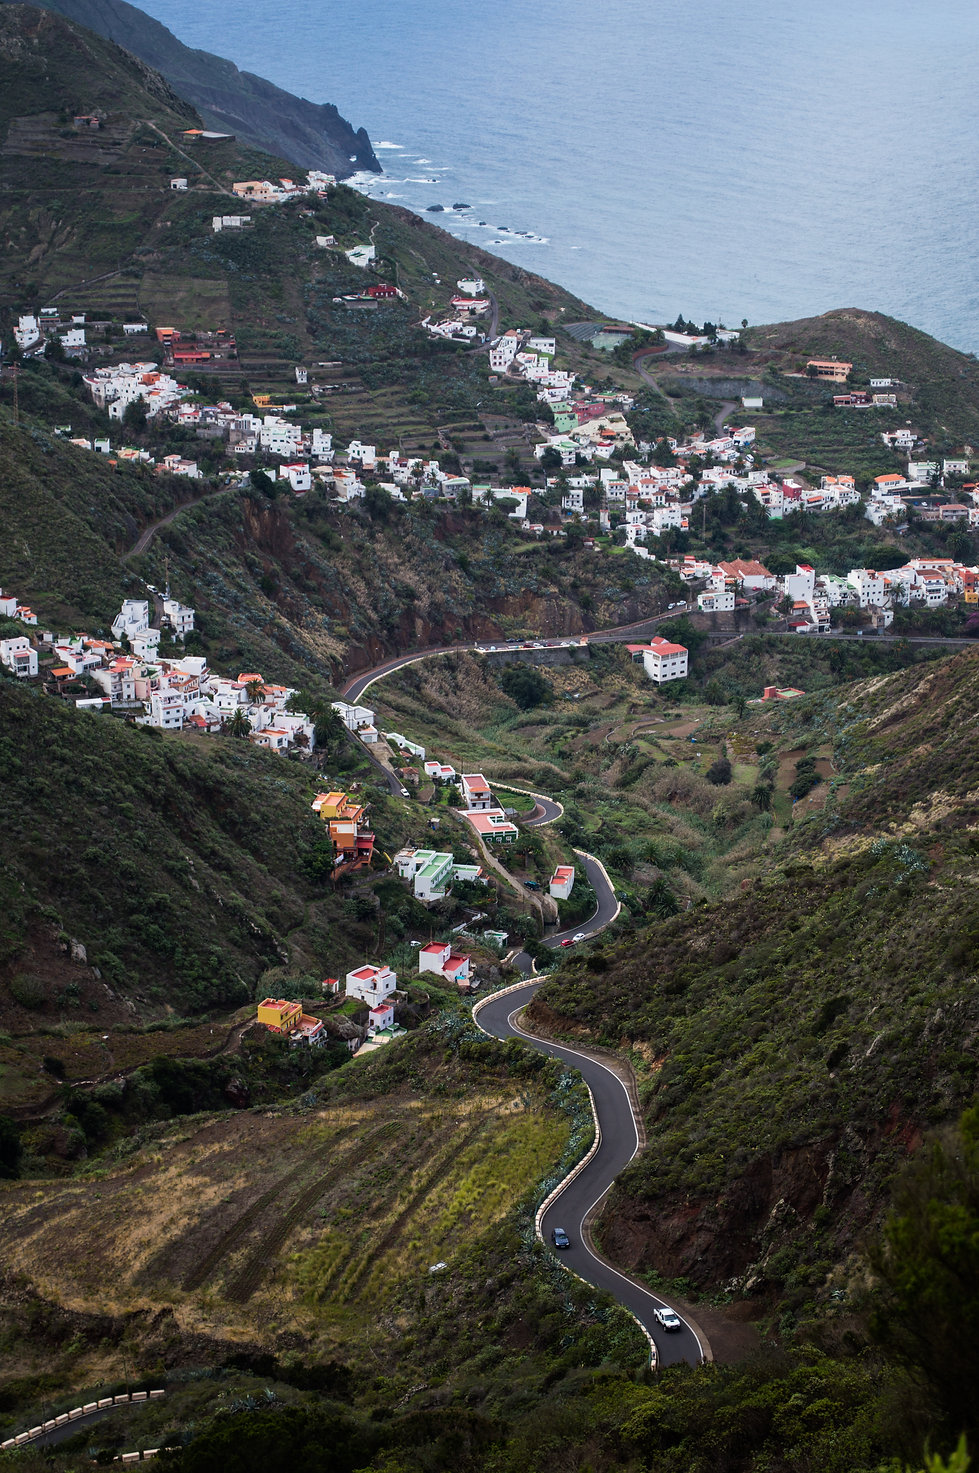 Village nestled in the cliffs of Tenerife, Spain